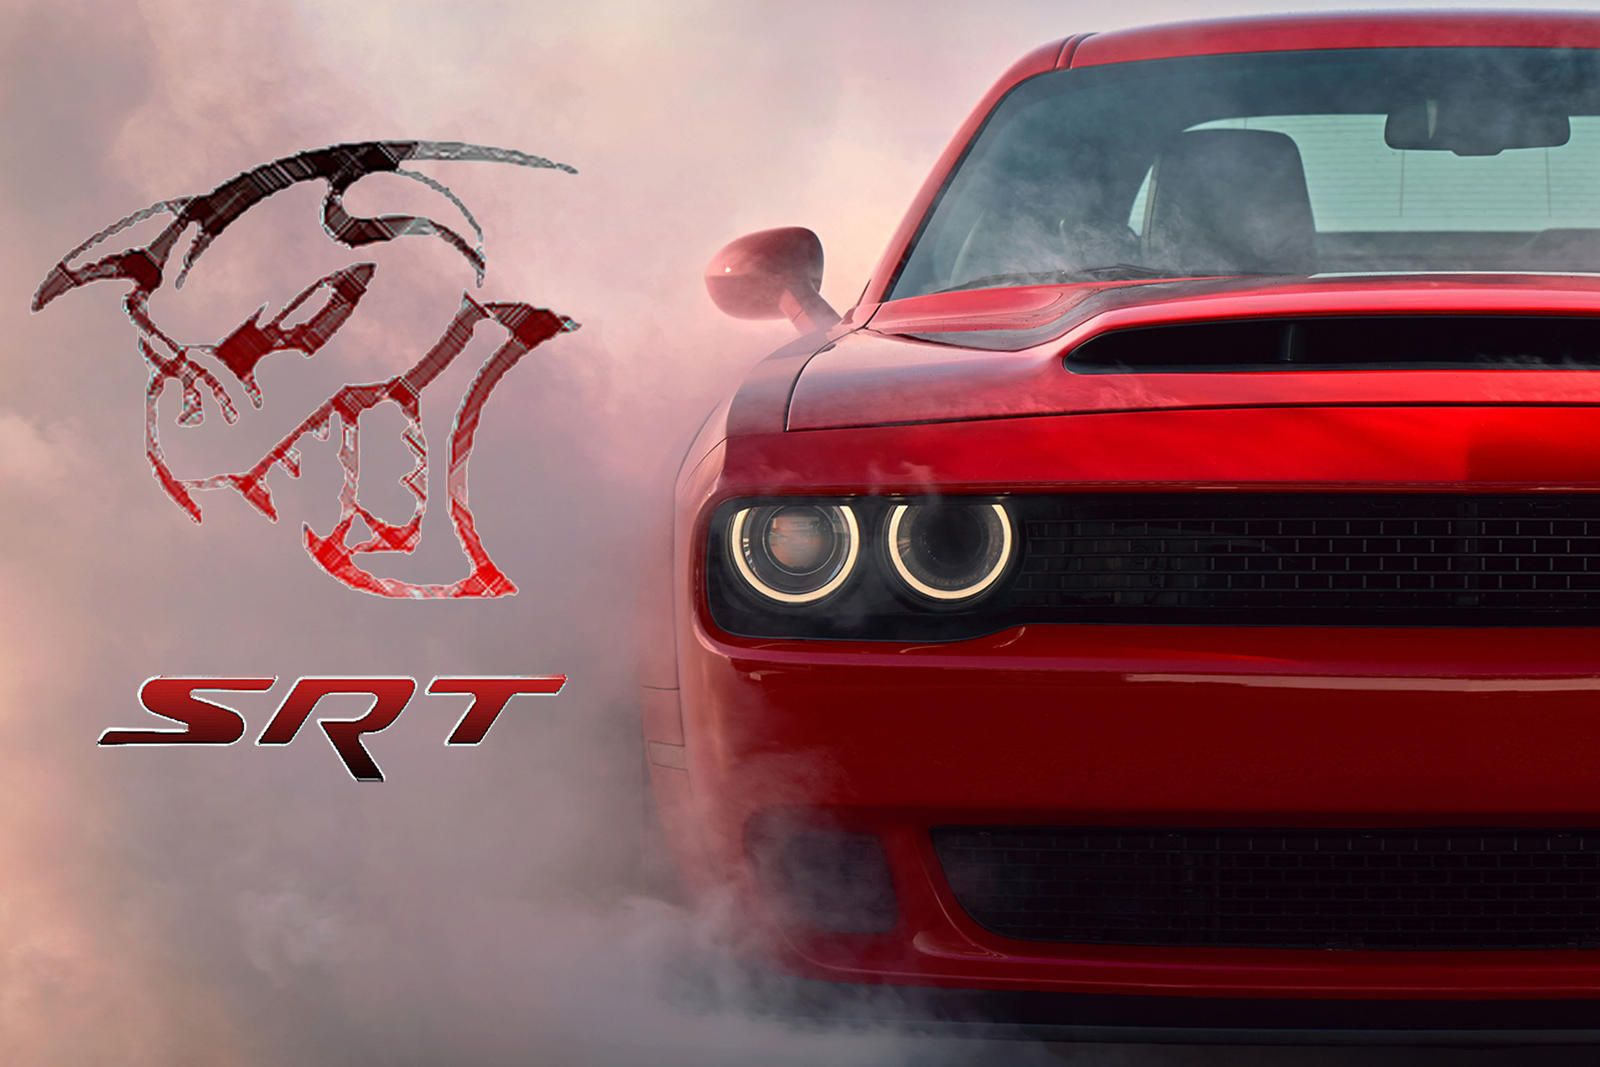 Dodge Reveals Plans For 200 000 Challenger Srt Ghoul The Demon Ain T Got Nothin On Mopar S Next Muscle Car Dodge Challenger Challenger Srt Dodge